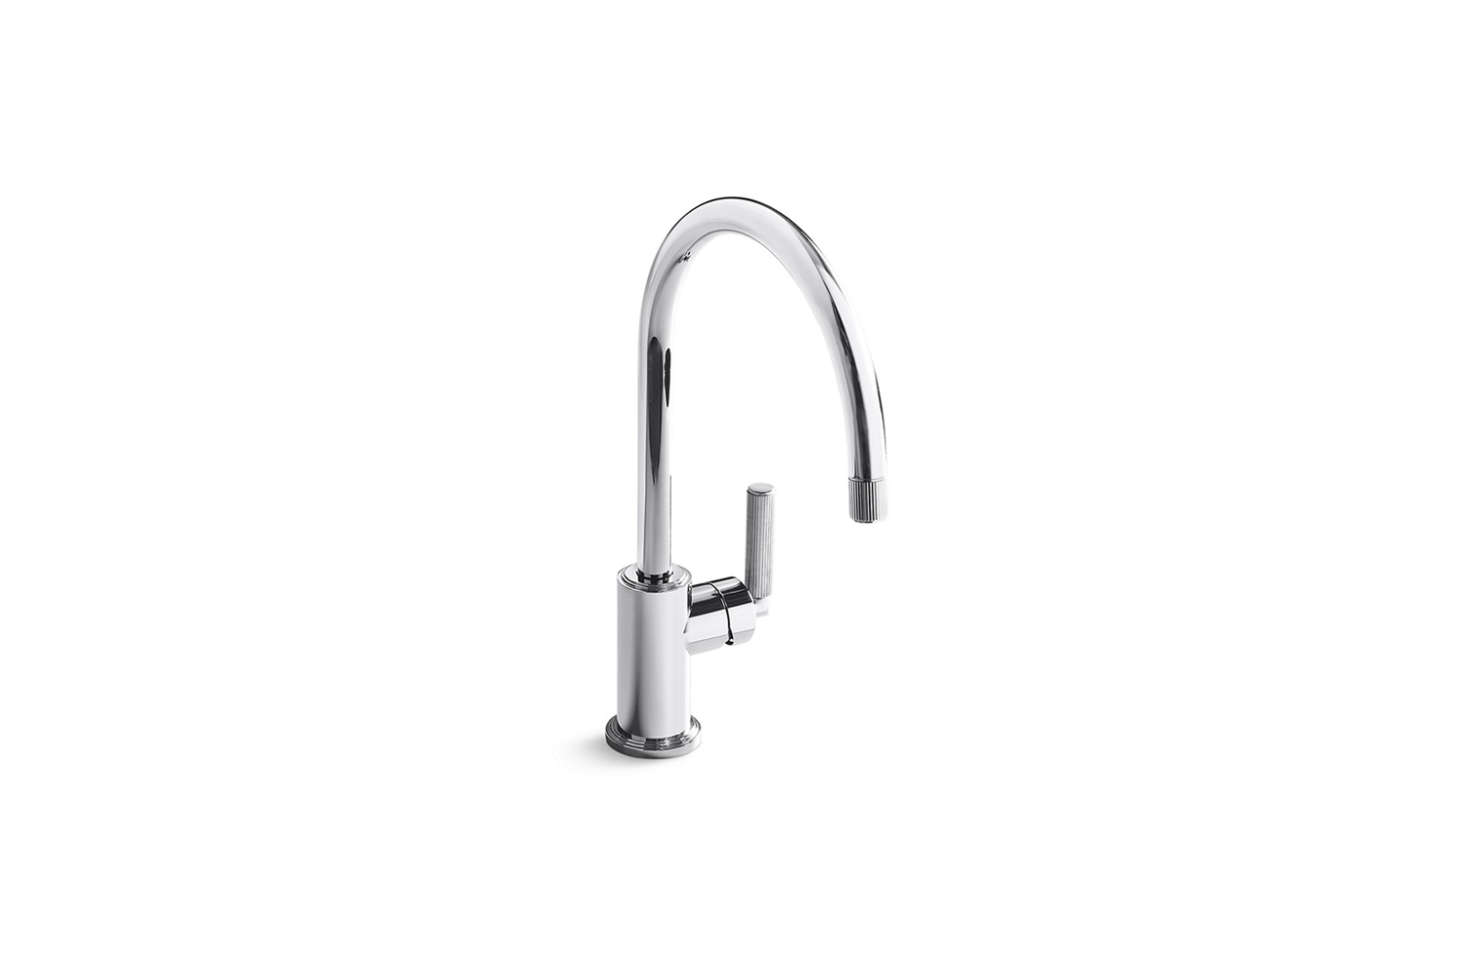 The Kallista Vir Stil Faucet is designed by interior architect Laura Kirar and features tubular details. Contact Kallista for ordering information.